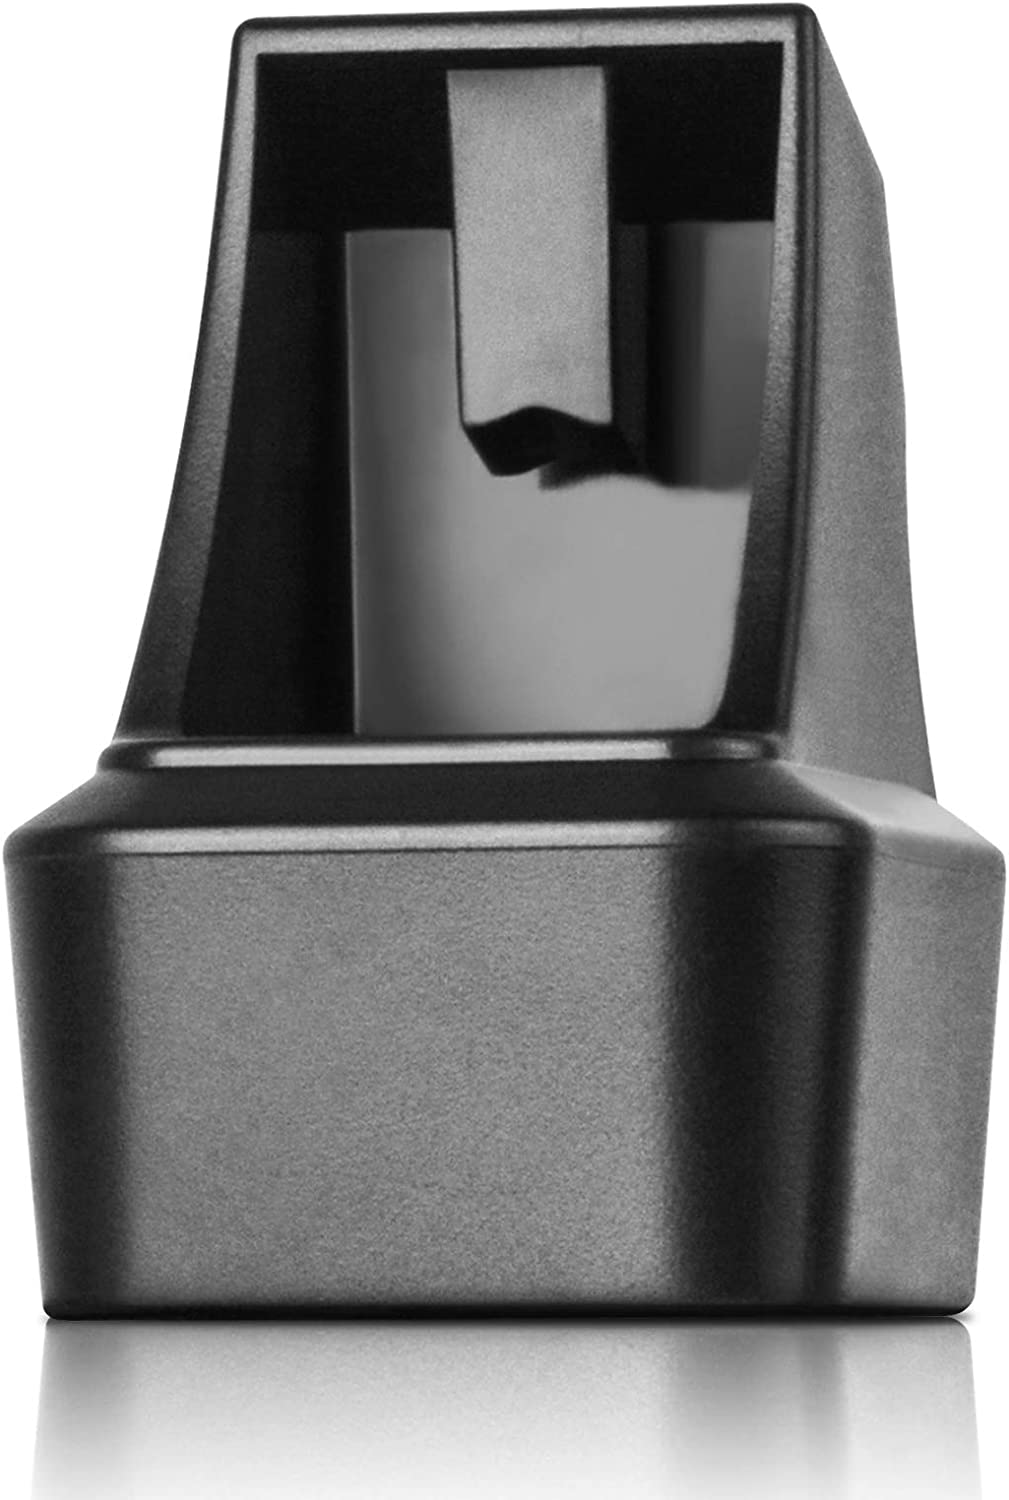 Fuxi Magazine Speed Loader -1 Pack//Compatible 9mm 45ACP Magazines 380ACP 40Cal